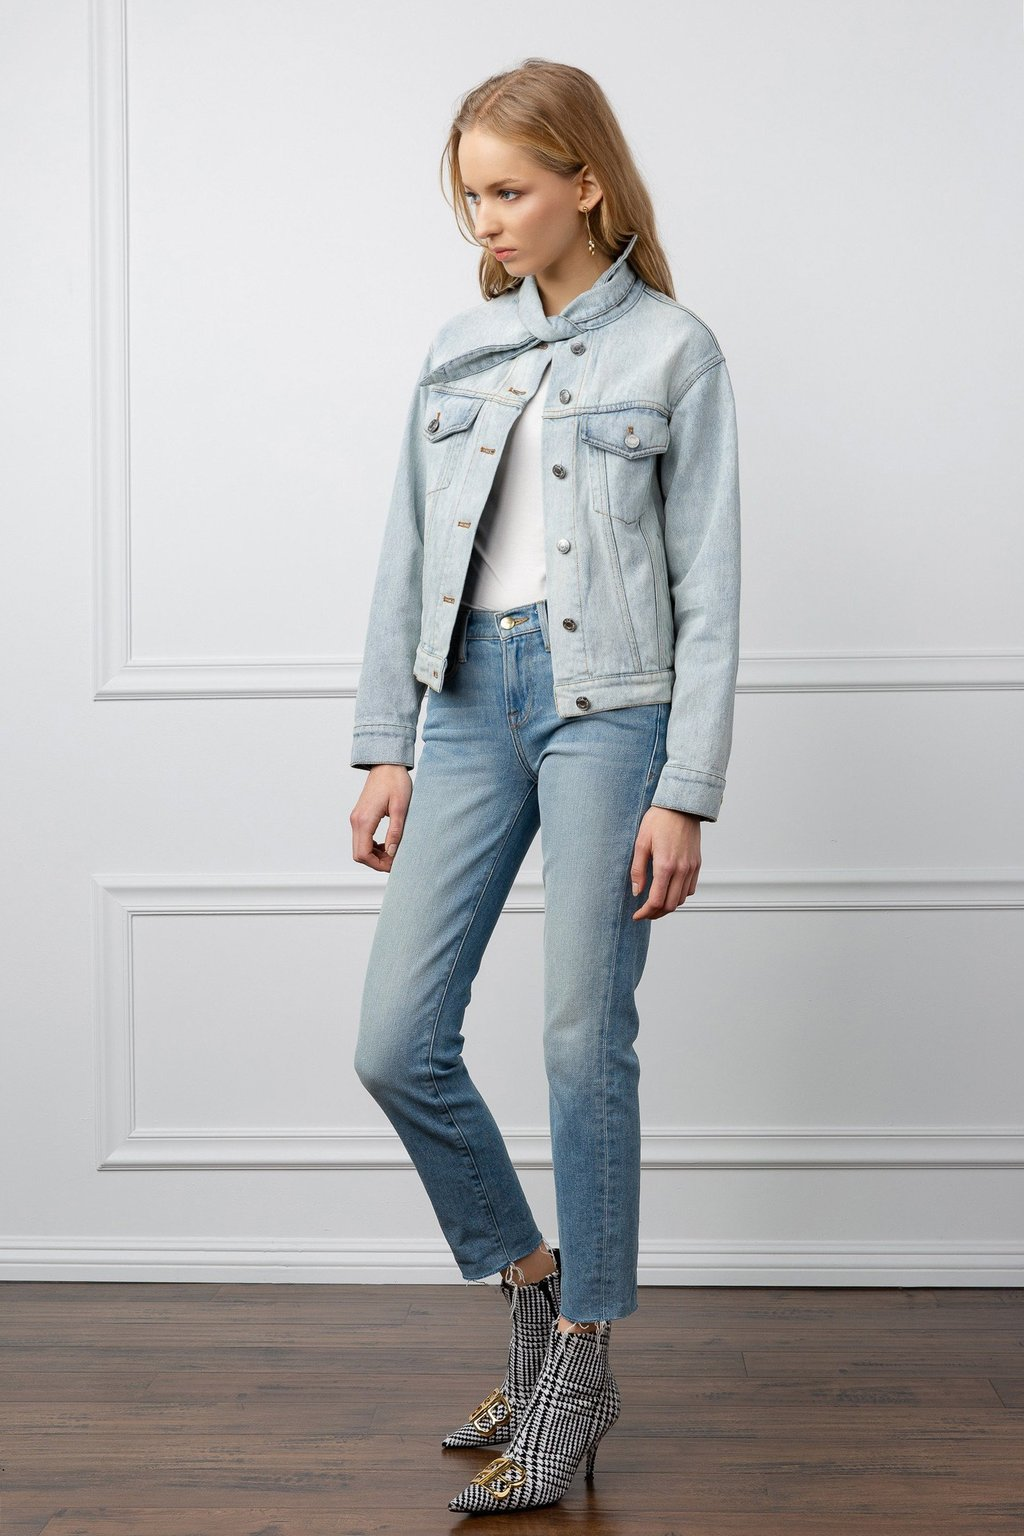 True Denim Tied Collar acid washed jacket by J.ING women's clothing